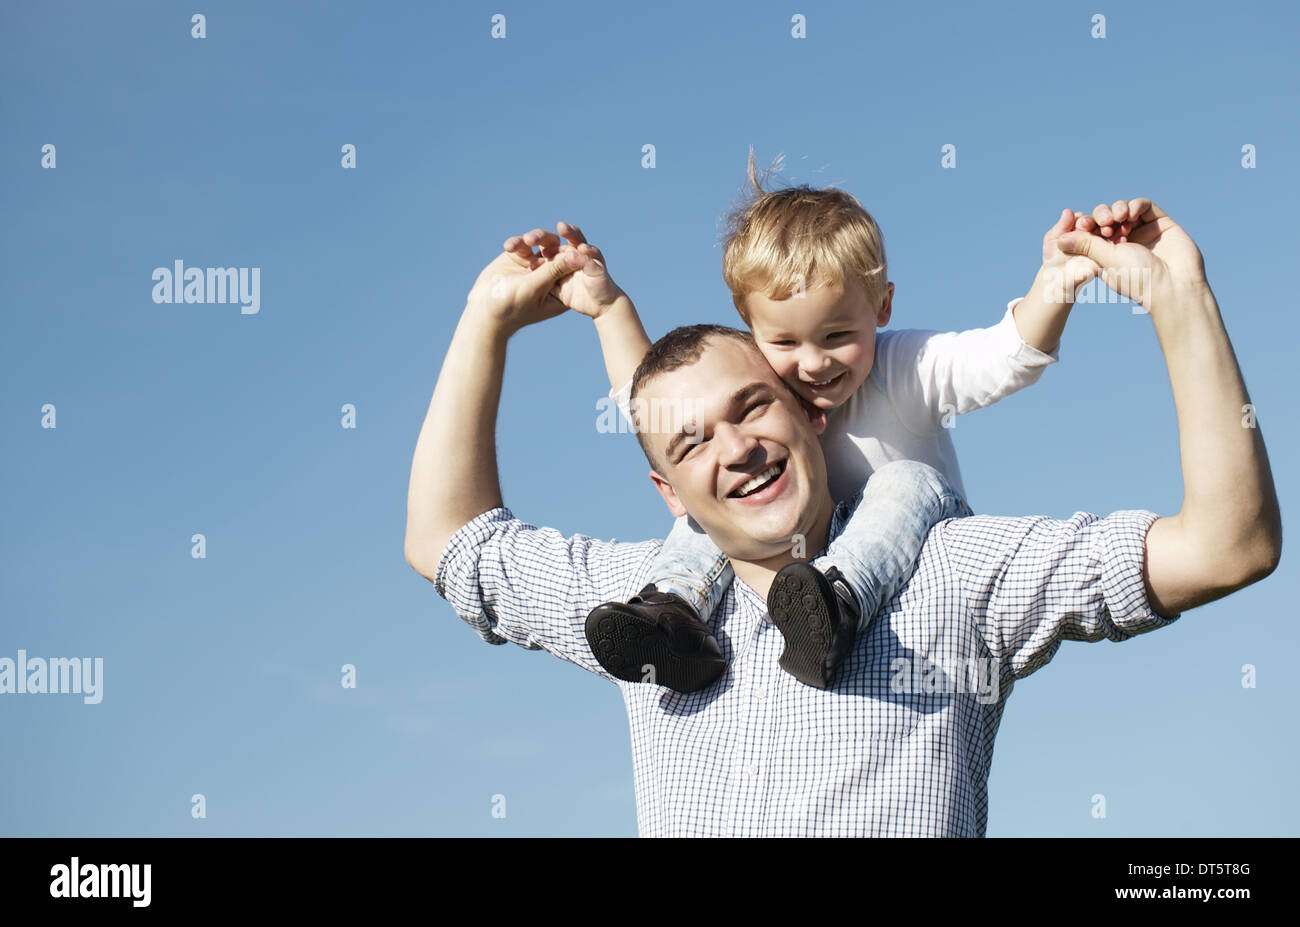 Dad giving his young son a piggy back ride - Stock Image